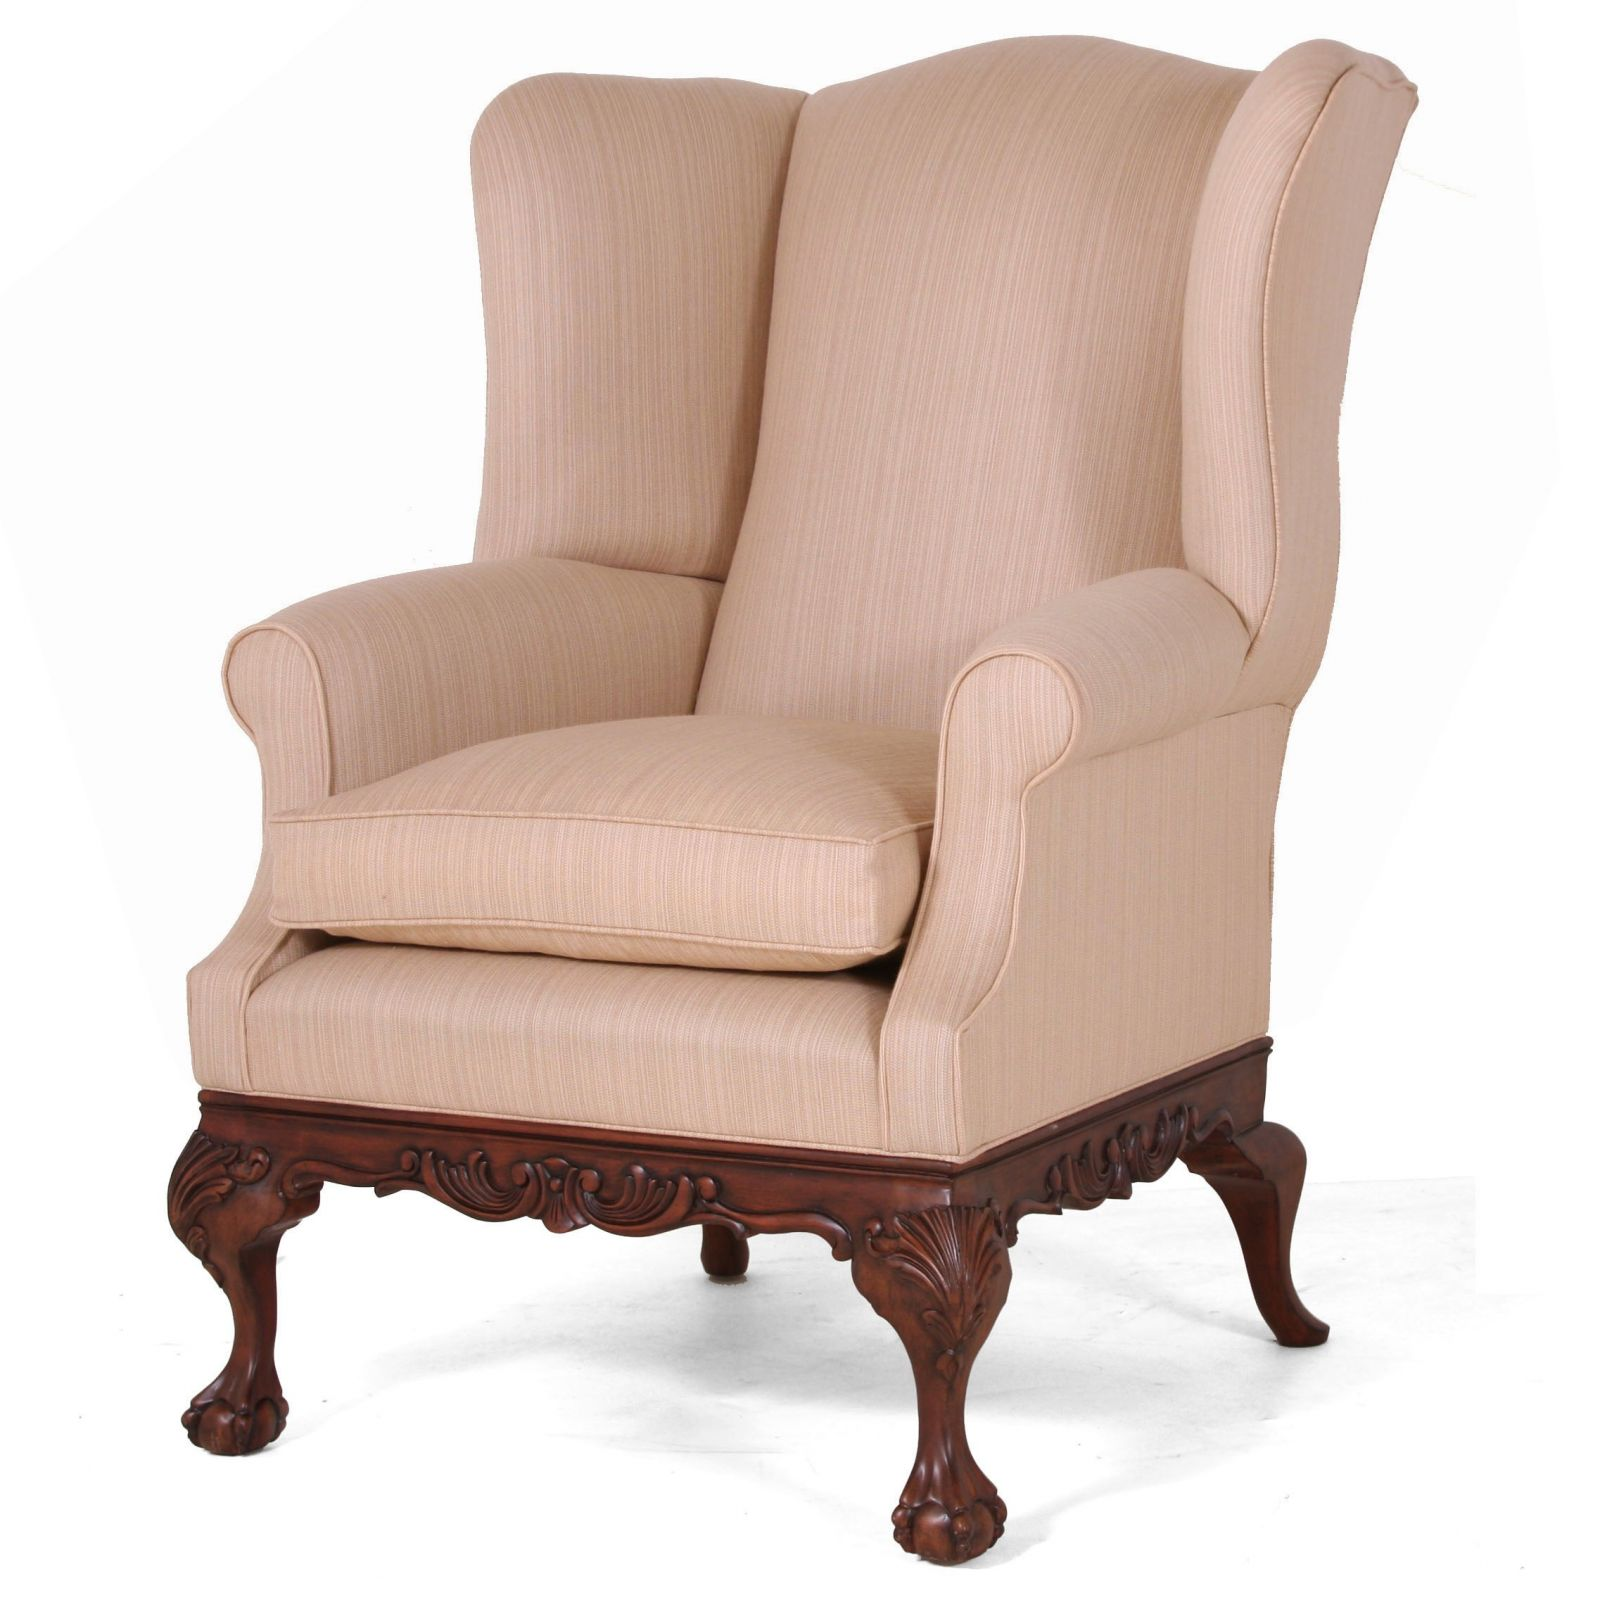 Sonning wing chair in Scottish Wool - Strie Beige